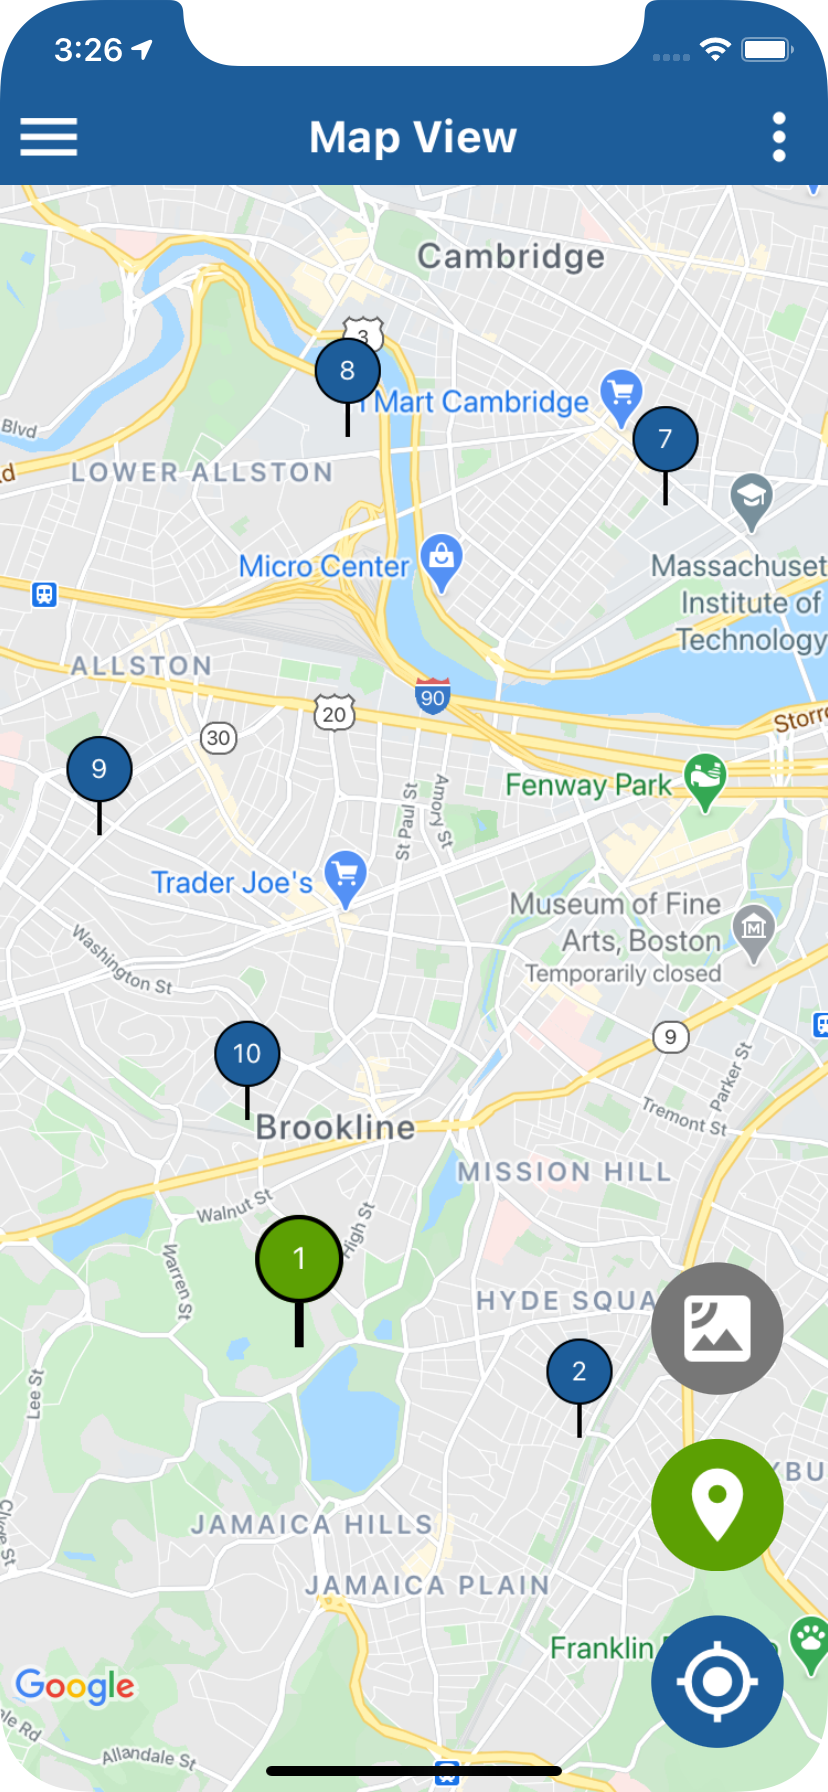 MyRouteOnline map view